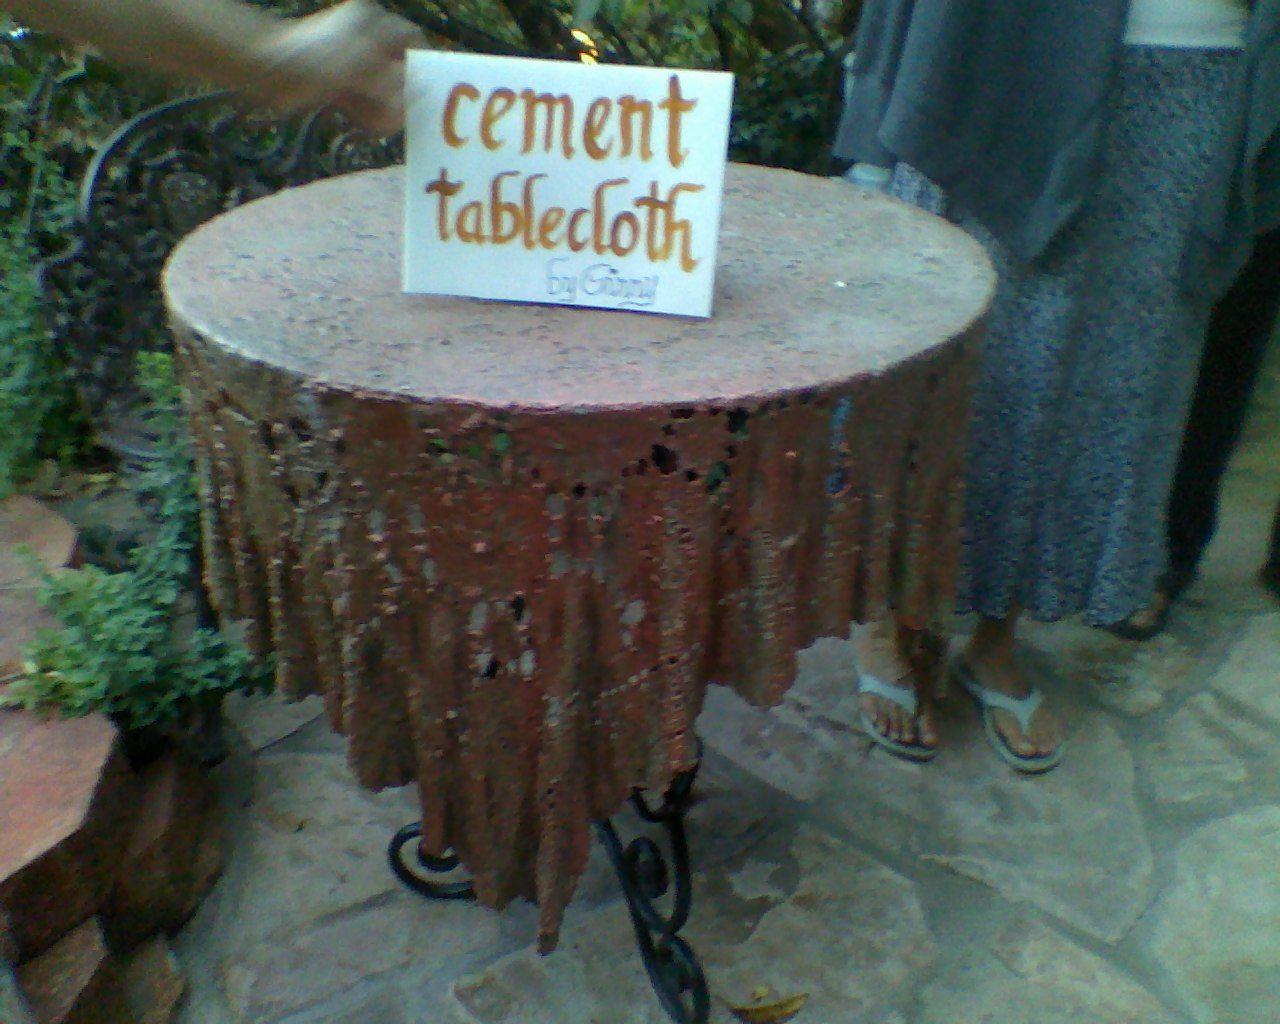 Ordinaire ♥cement Tablecloth, Also You Could Make Cement Planter Pots.